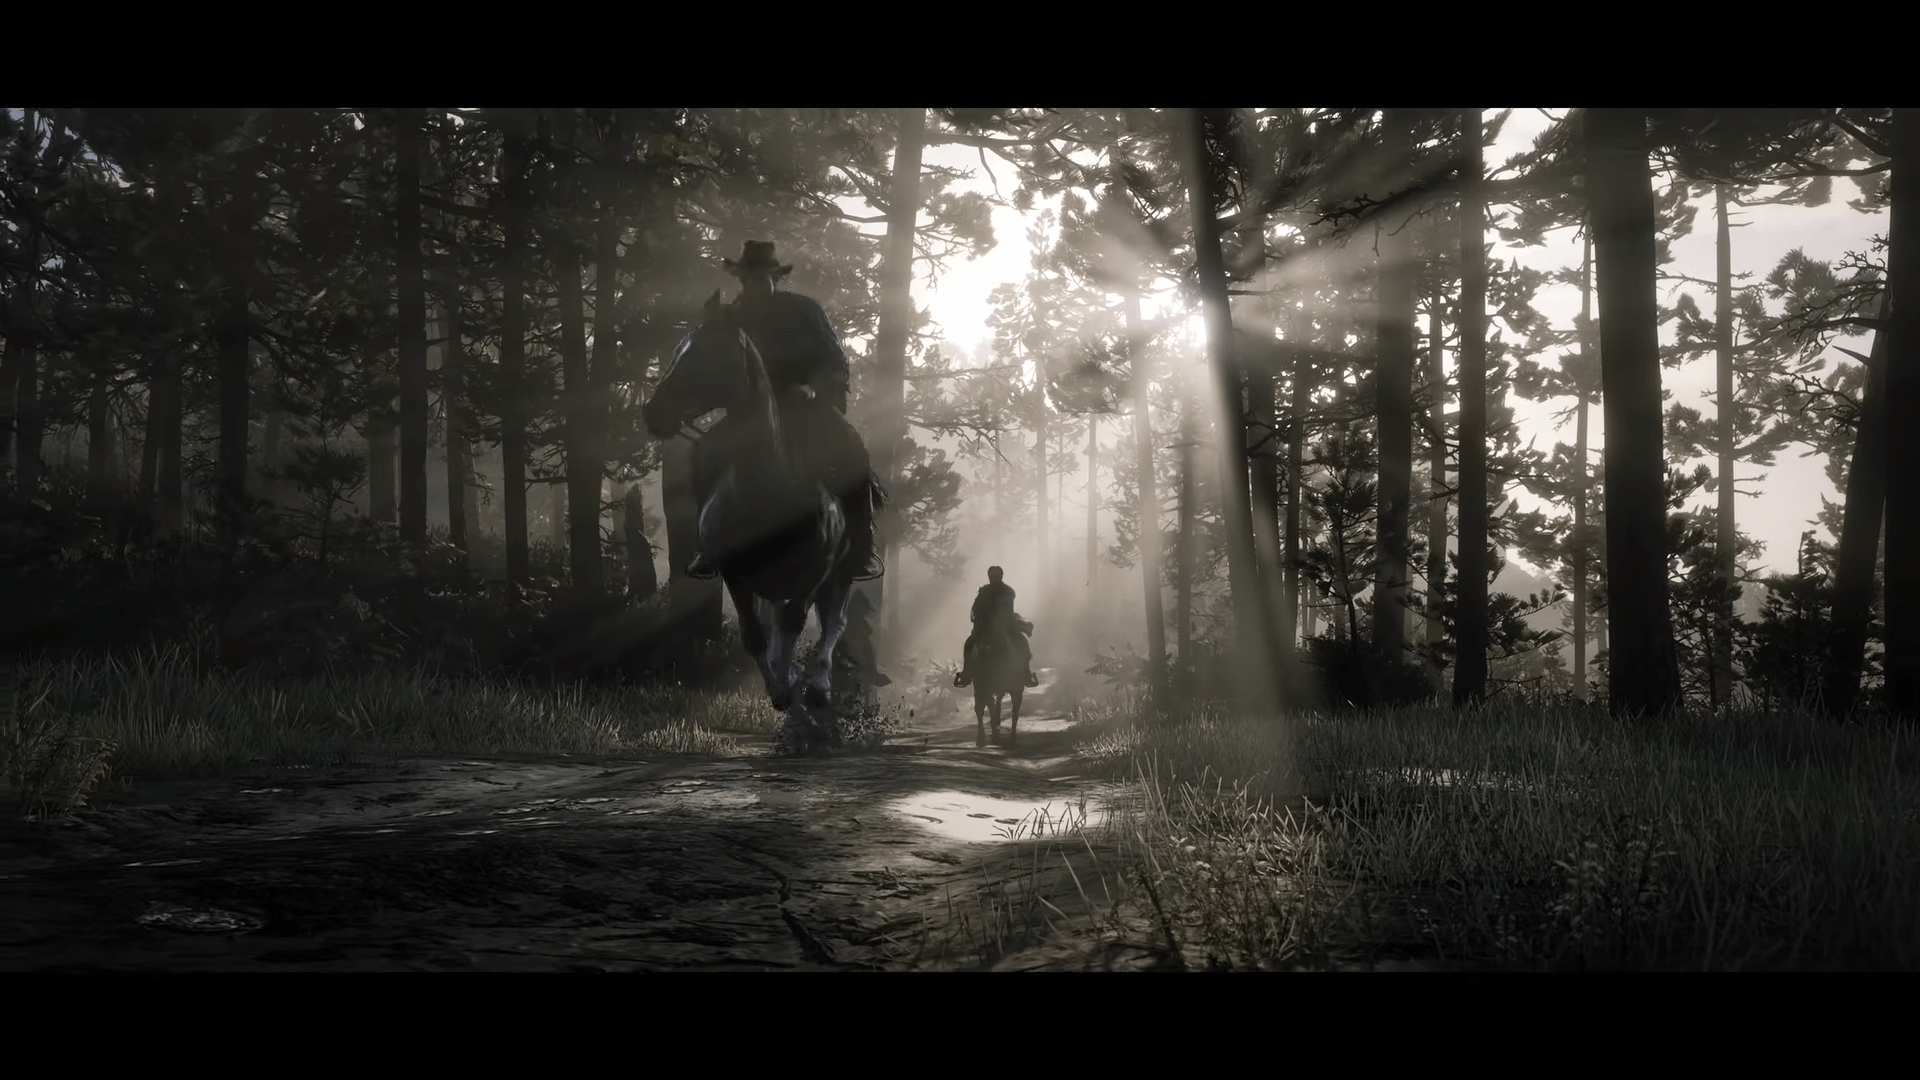 Waiting For The Midnight Release Of Red Dead Redemption 2 On PC? You May Be Waiting For Quite A While